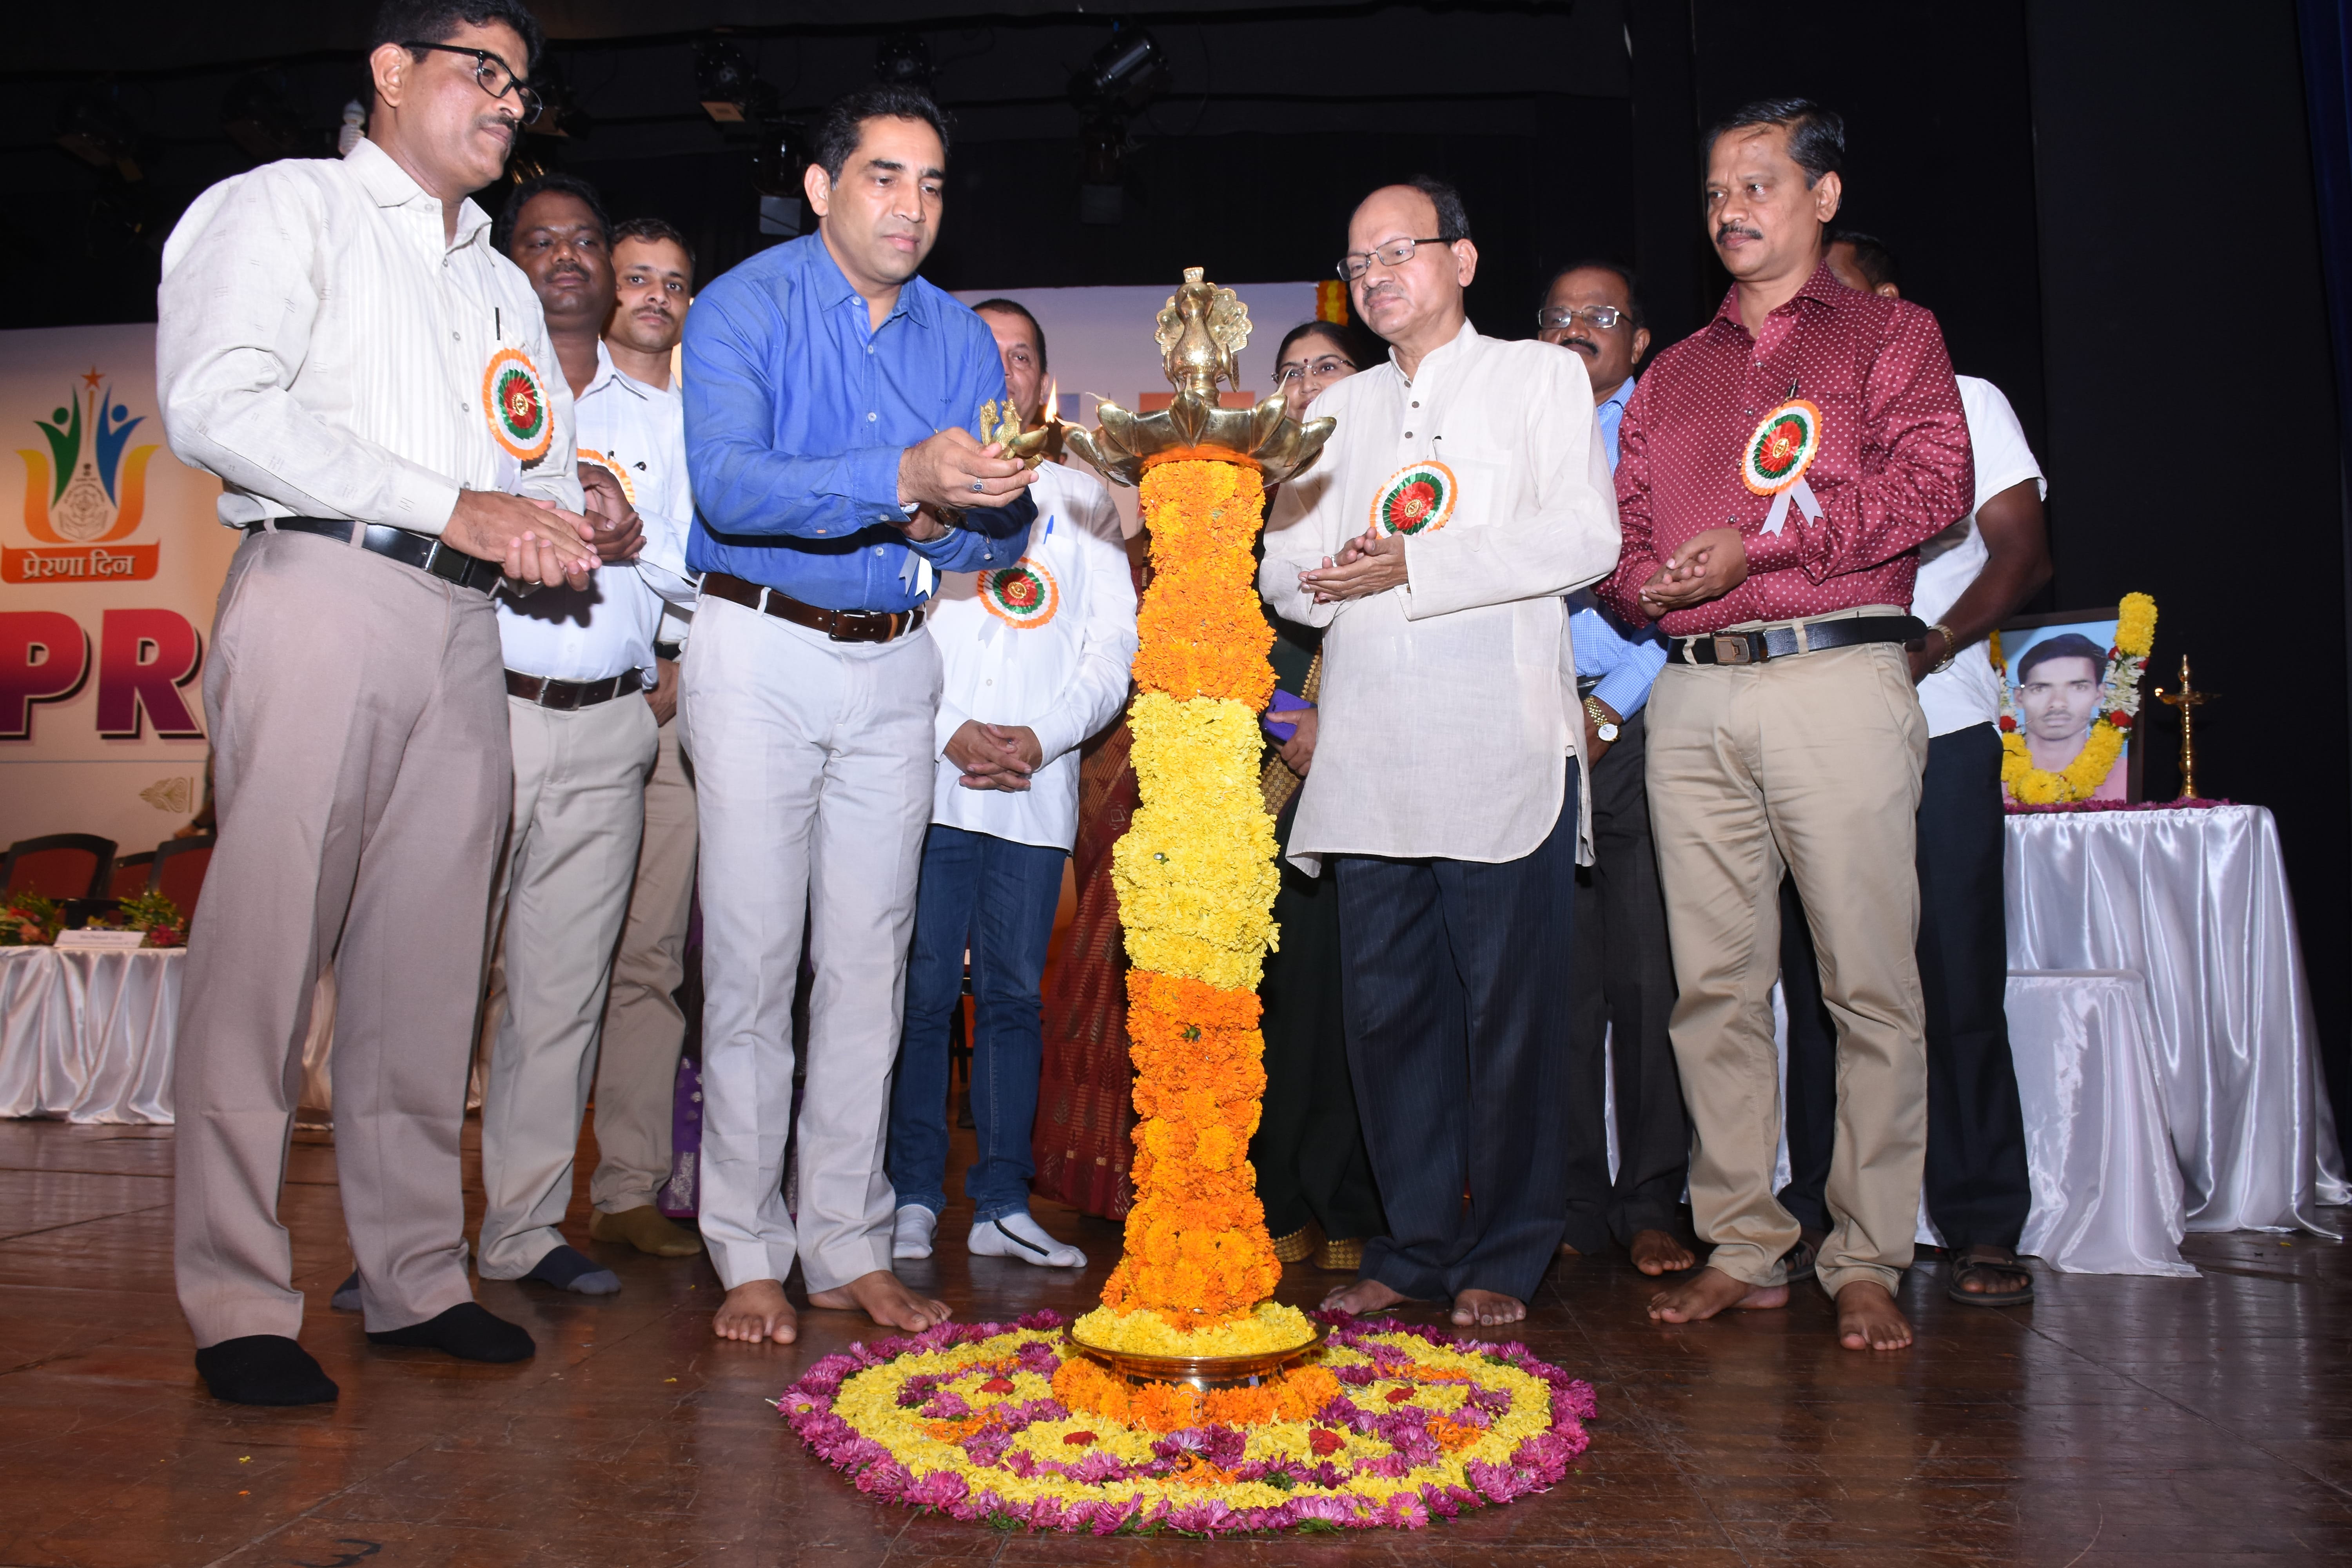 Lighting of lamps by Hon'bla Minister for Tribal Welfare Shri Govind Gaude, Shri Prakash Velip, Chairperson of Goa Comission for SC/ST, Shri Durgadas Gaude, Chairperson of GSSTFDCL and Shri Venancio Furtado, Director of Tribal Welfare.